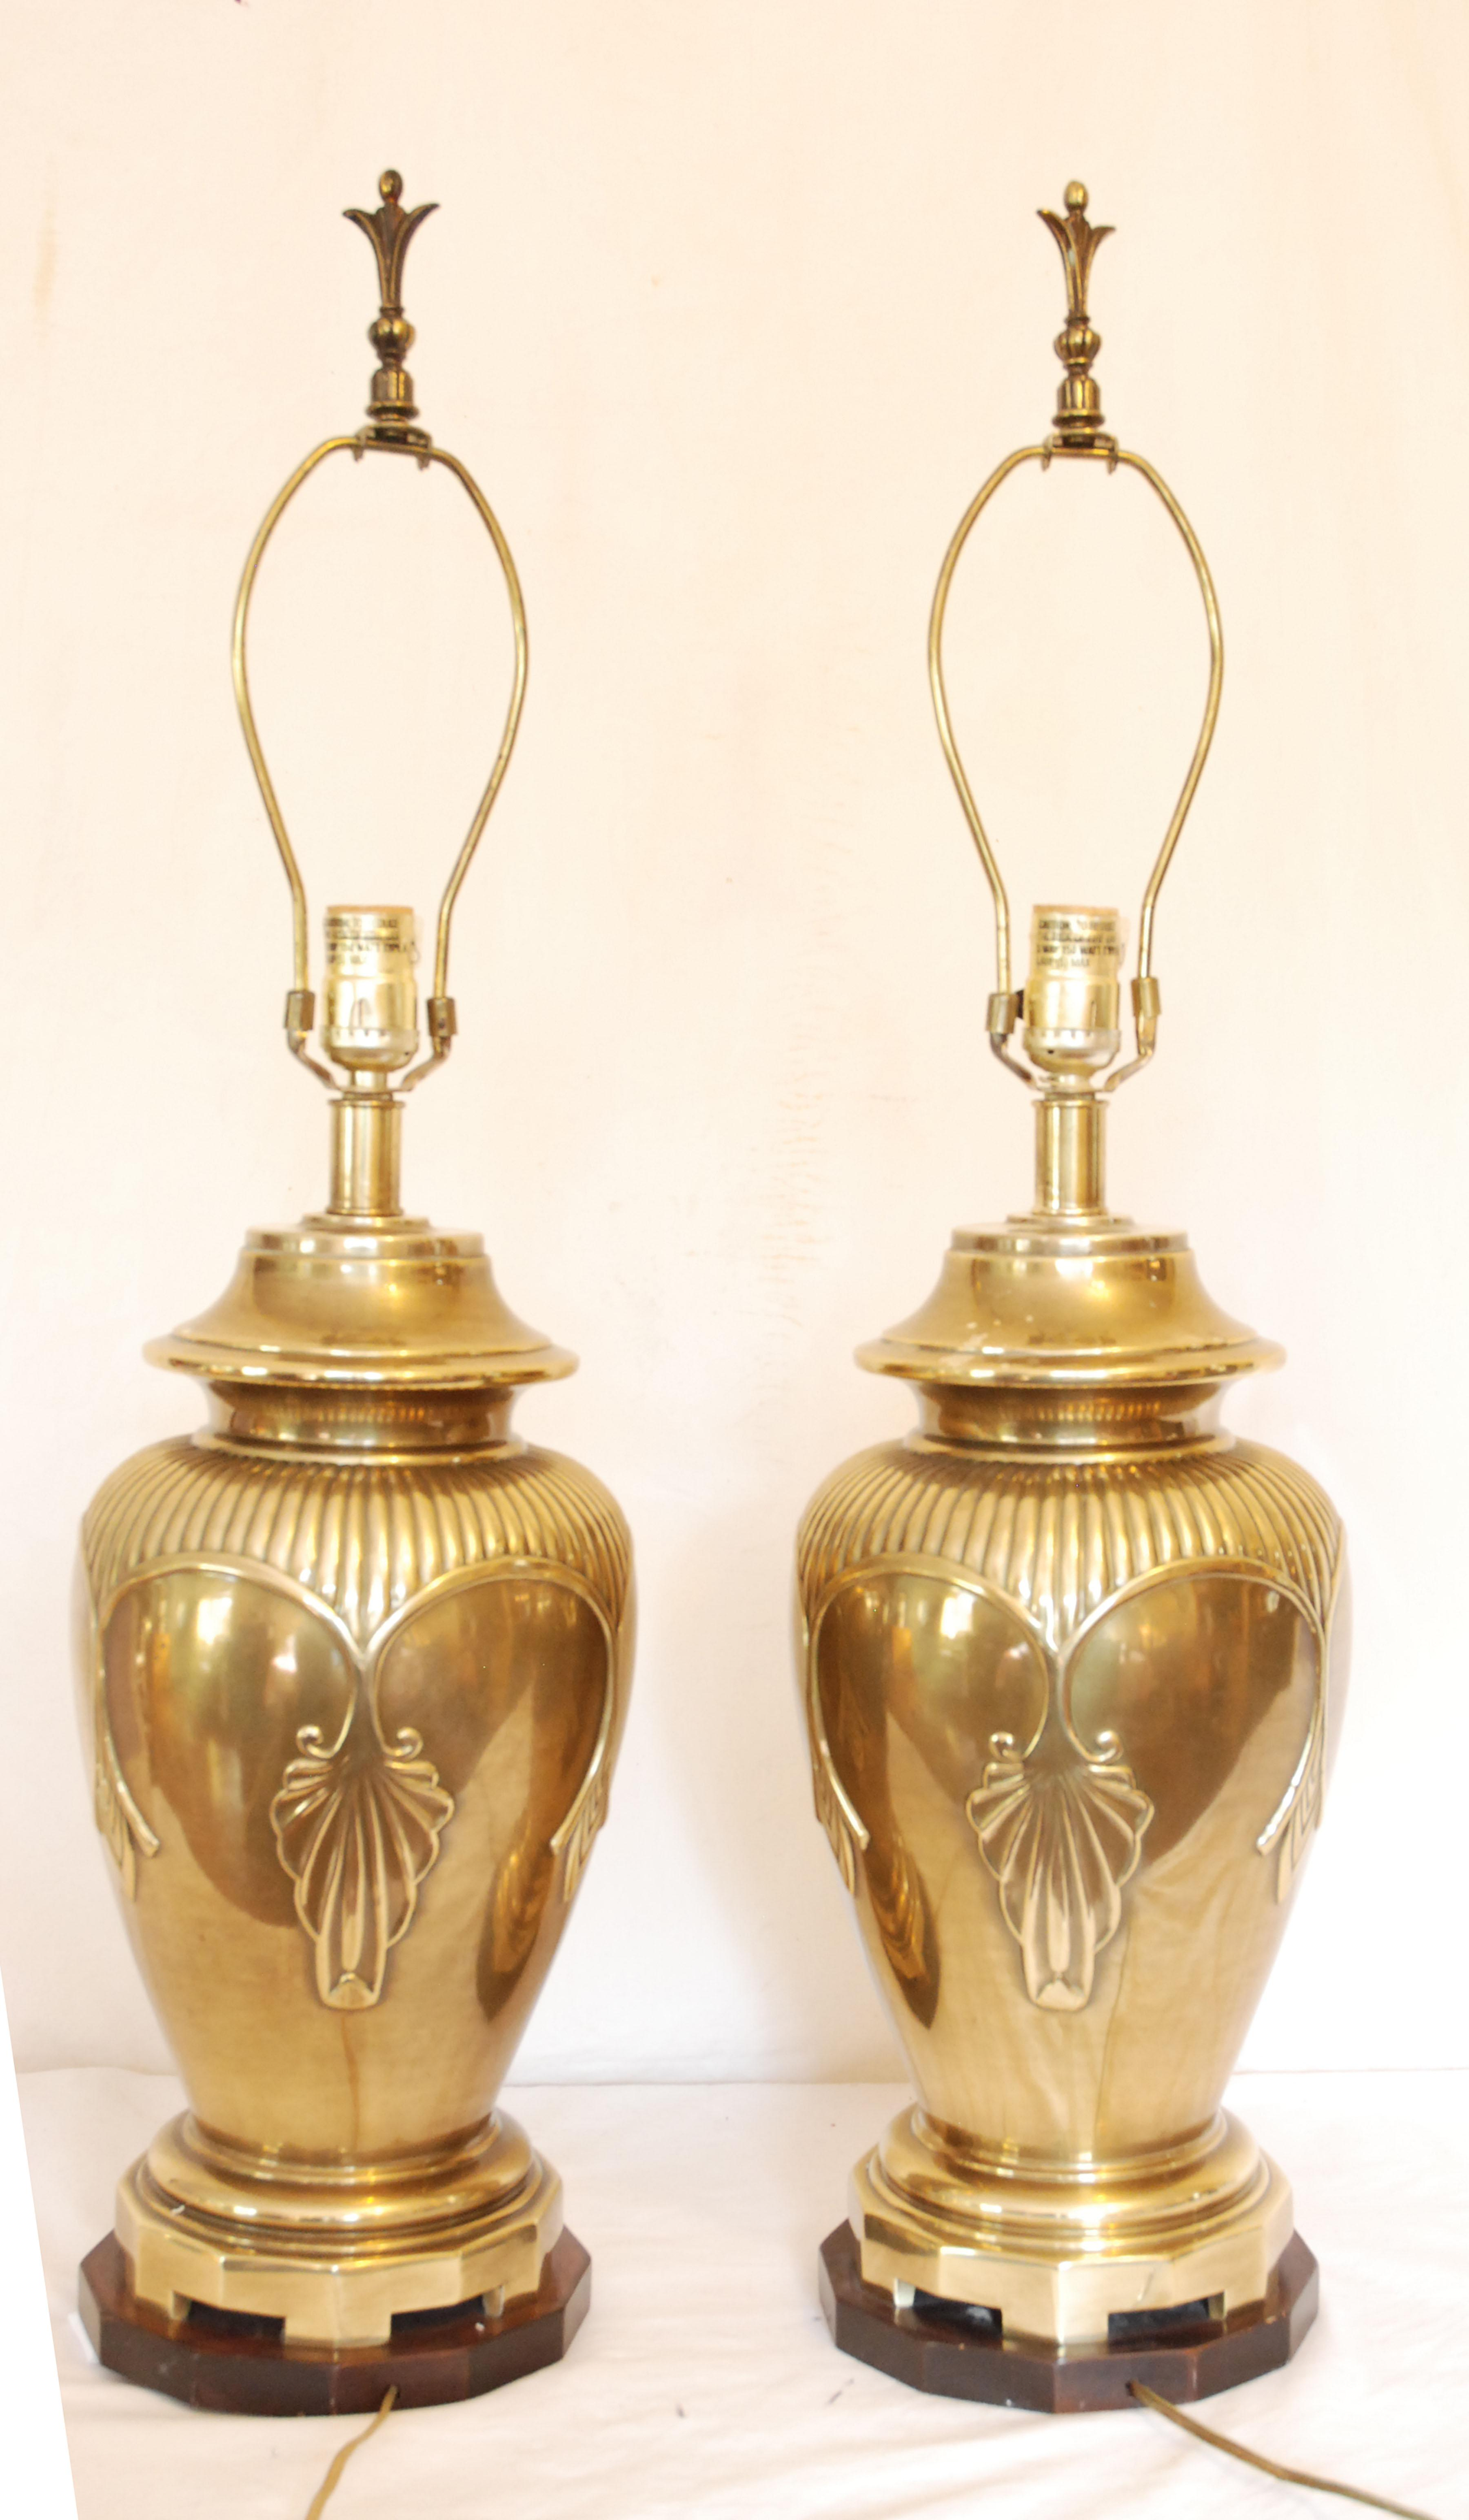 Exceptional Elegant Vintage Brass Asian Style Ginger Jar Lamps   A Pair   Image 4 Of 6